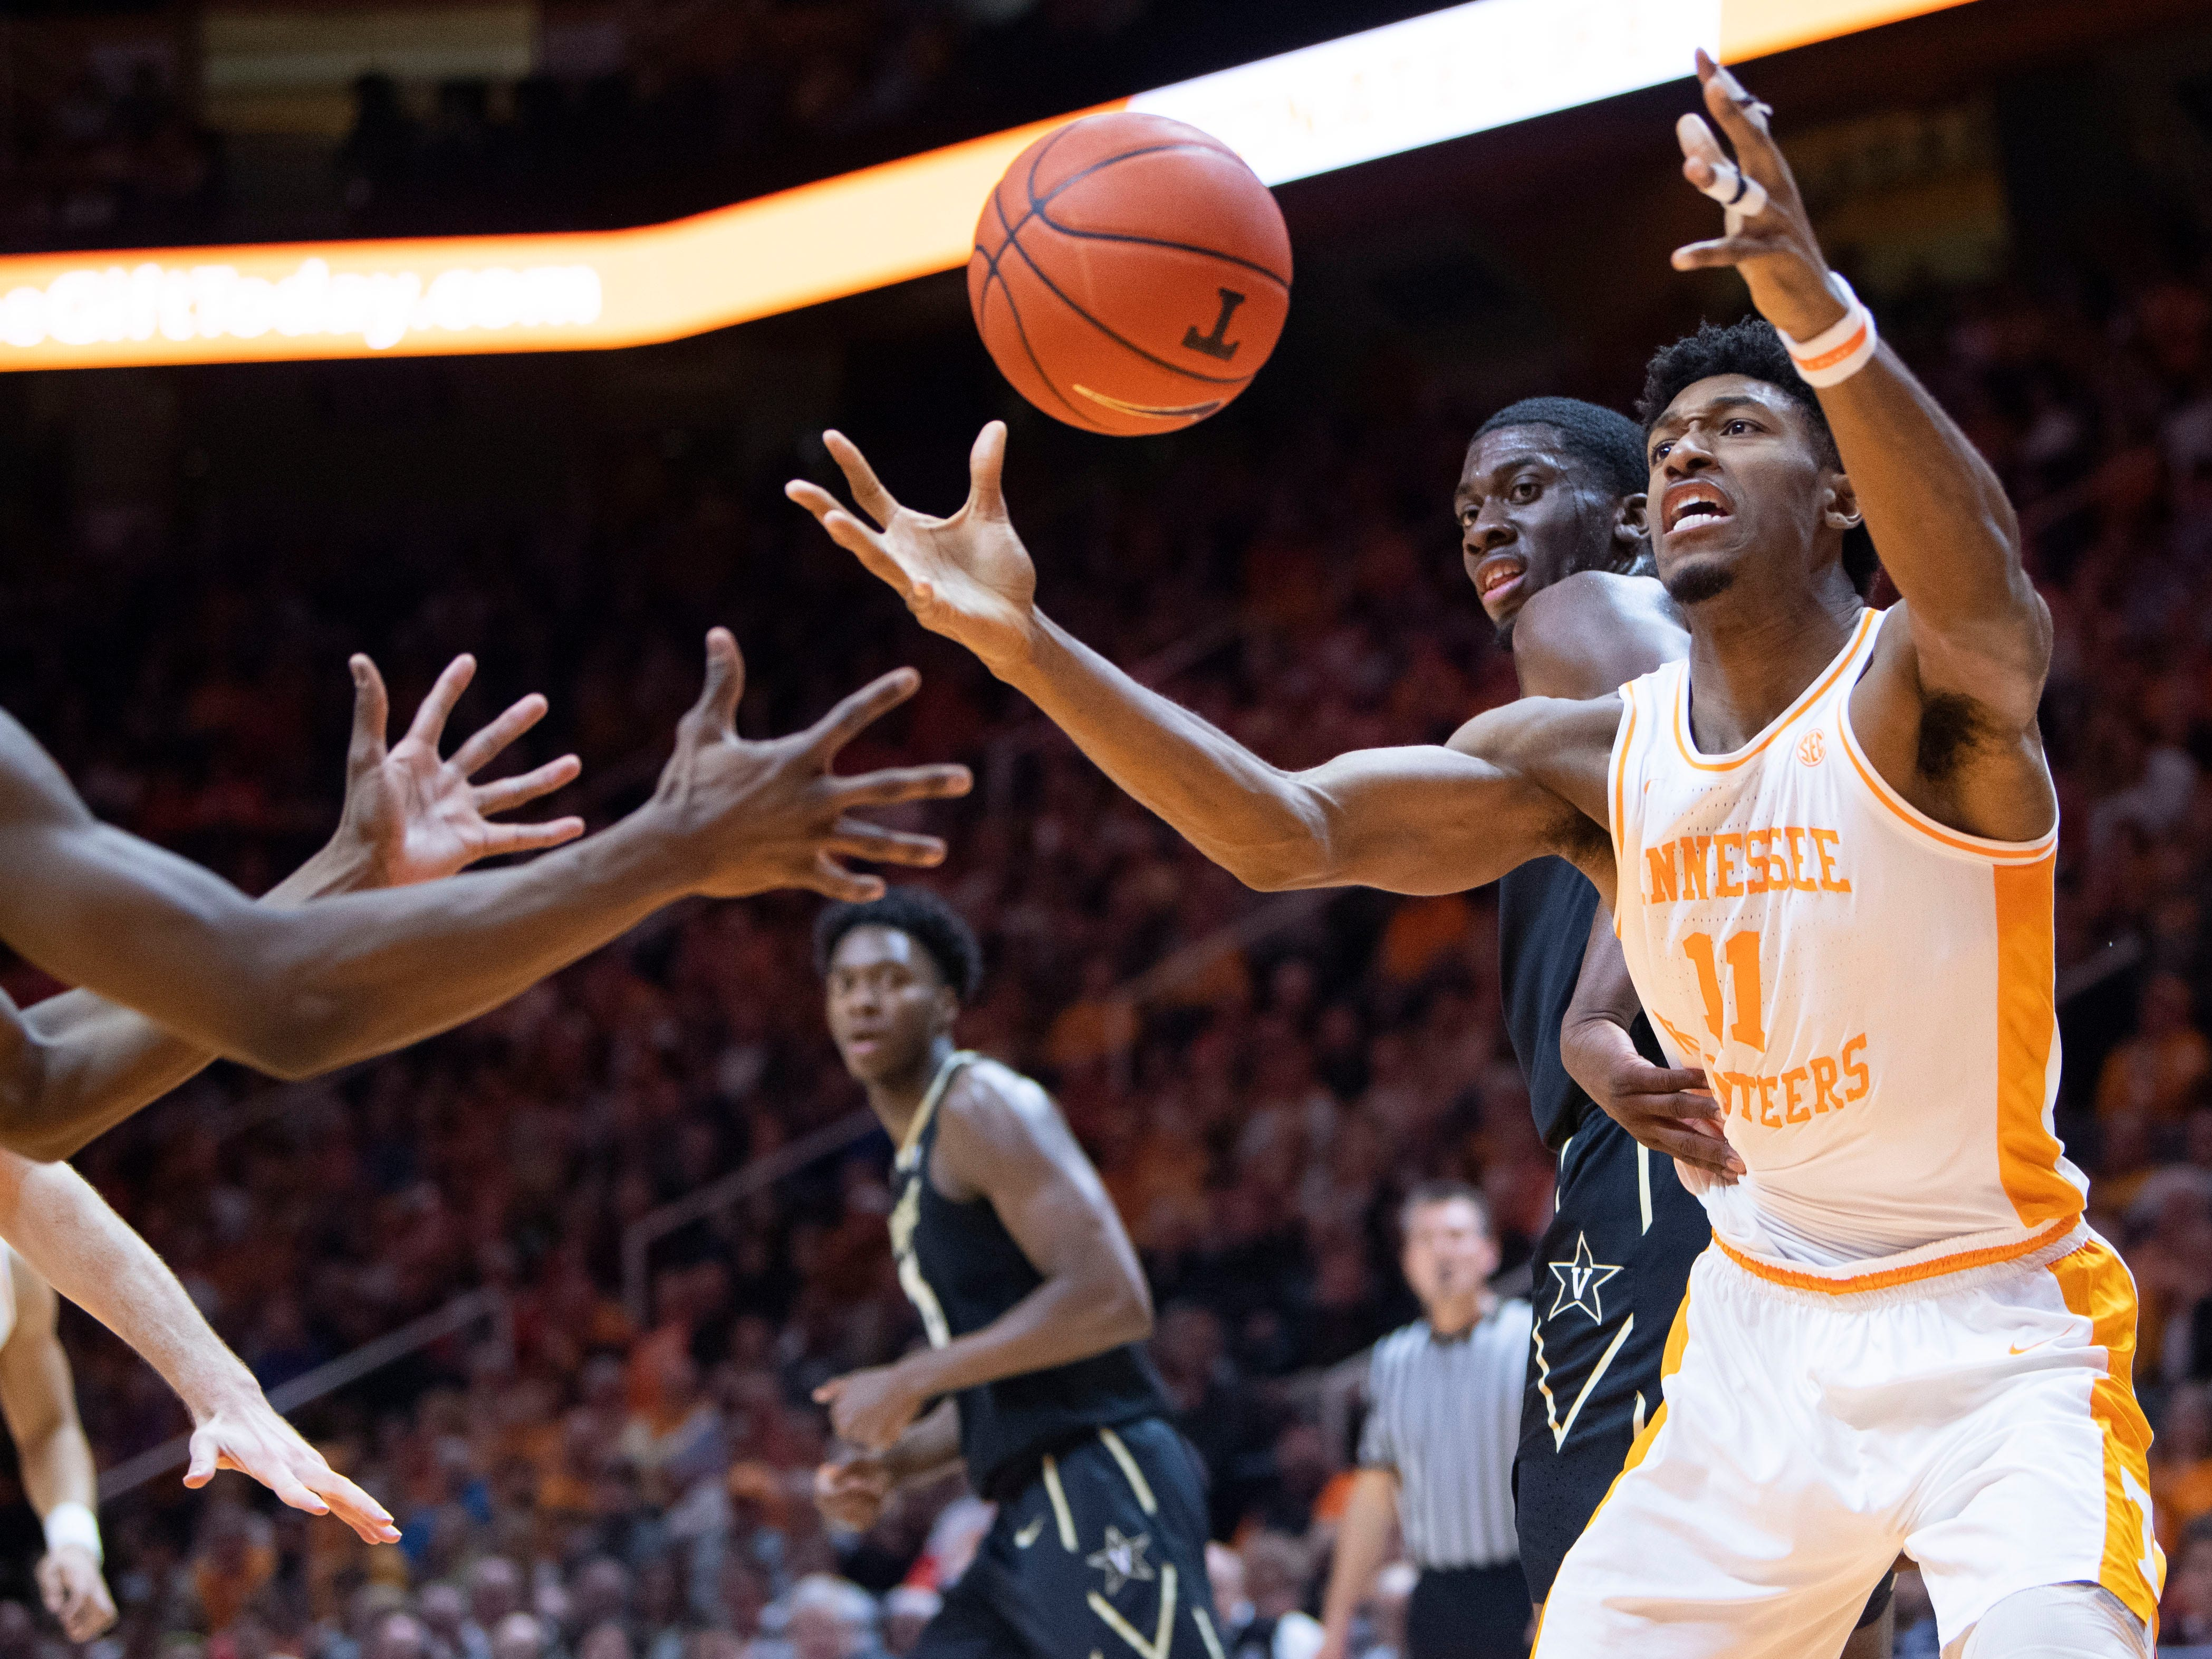 Tennessee's Kyle Alexander (11) gets a rebound in the game against Vanderbilt on Tuesday, February 19, 2019.